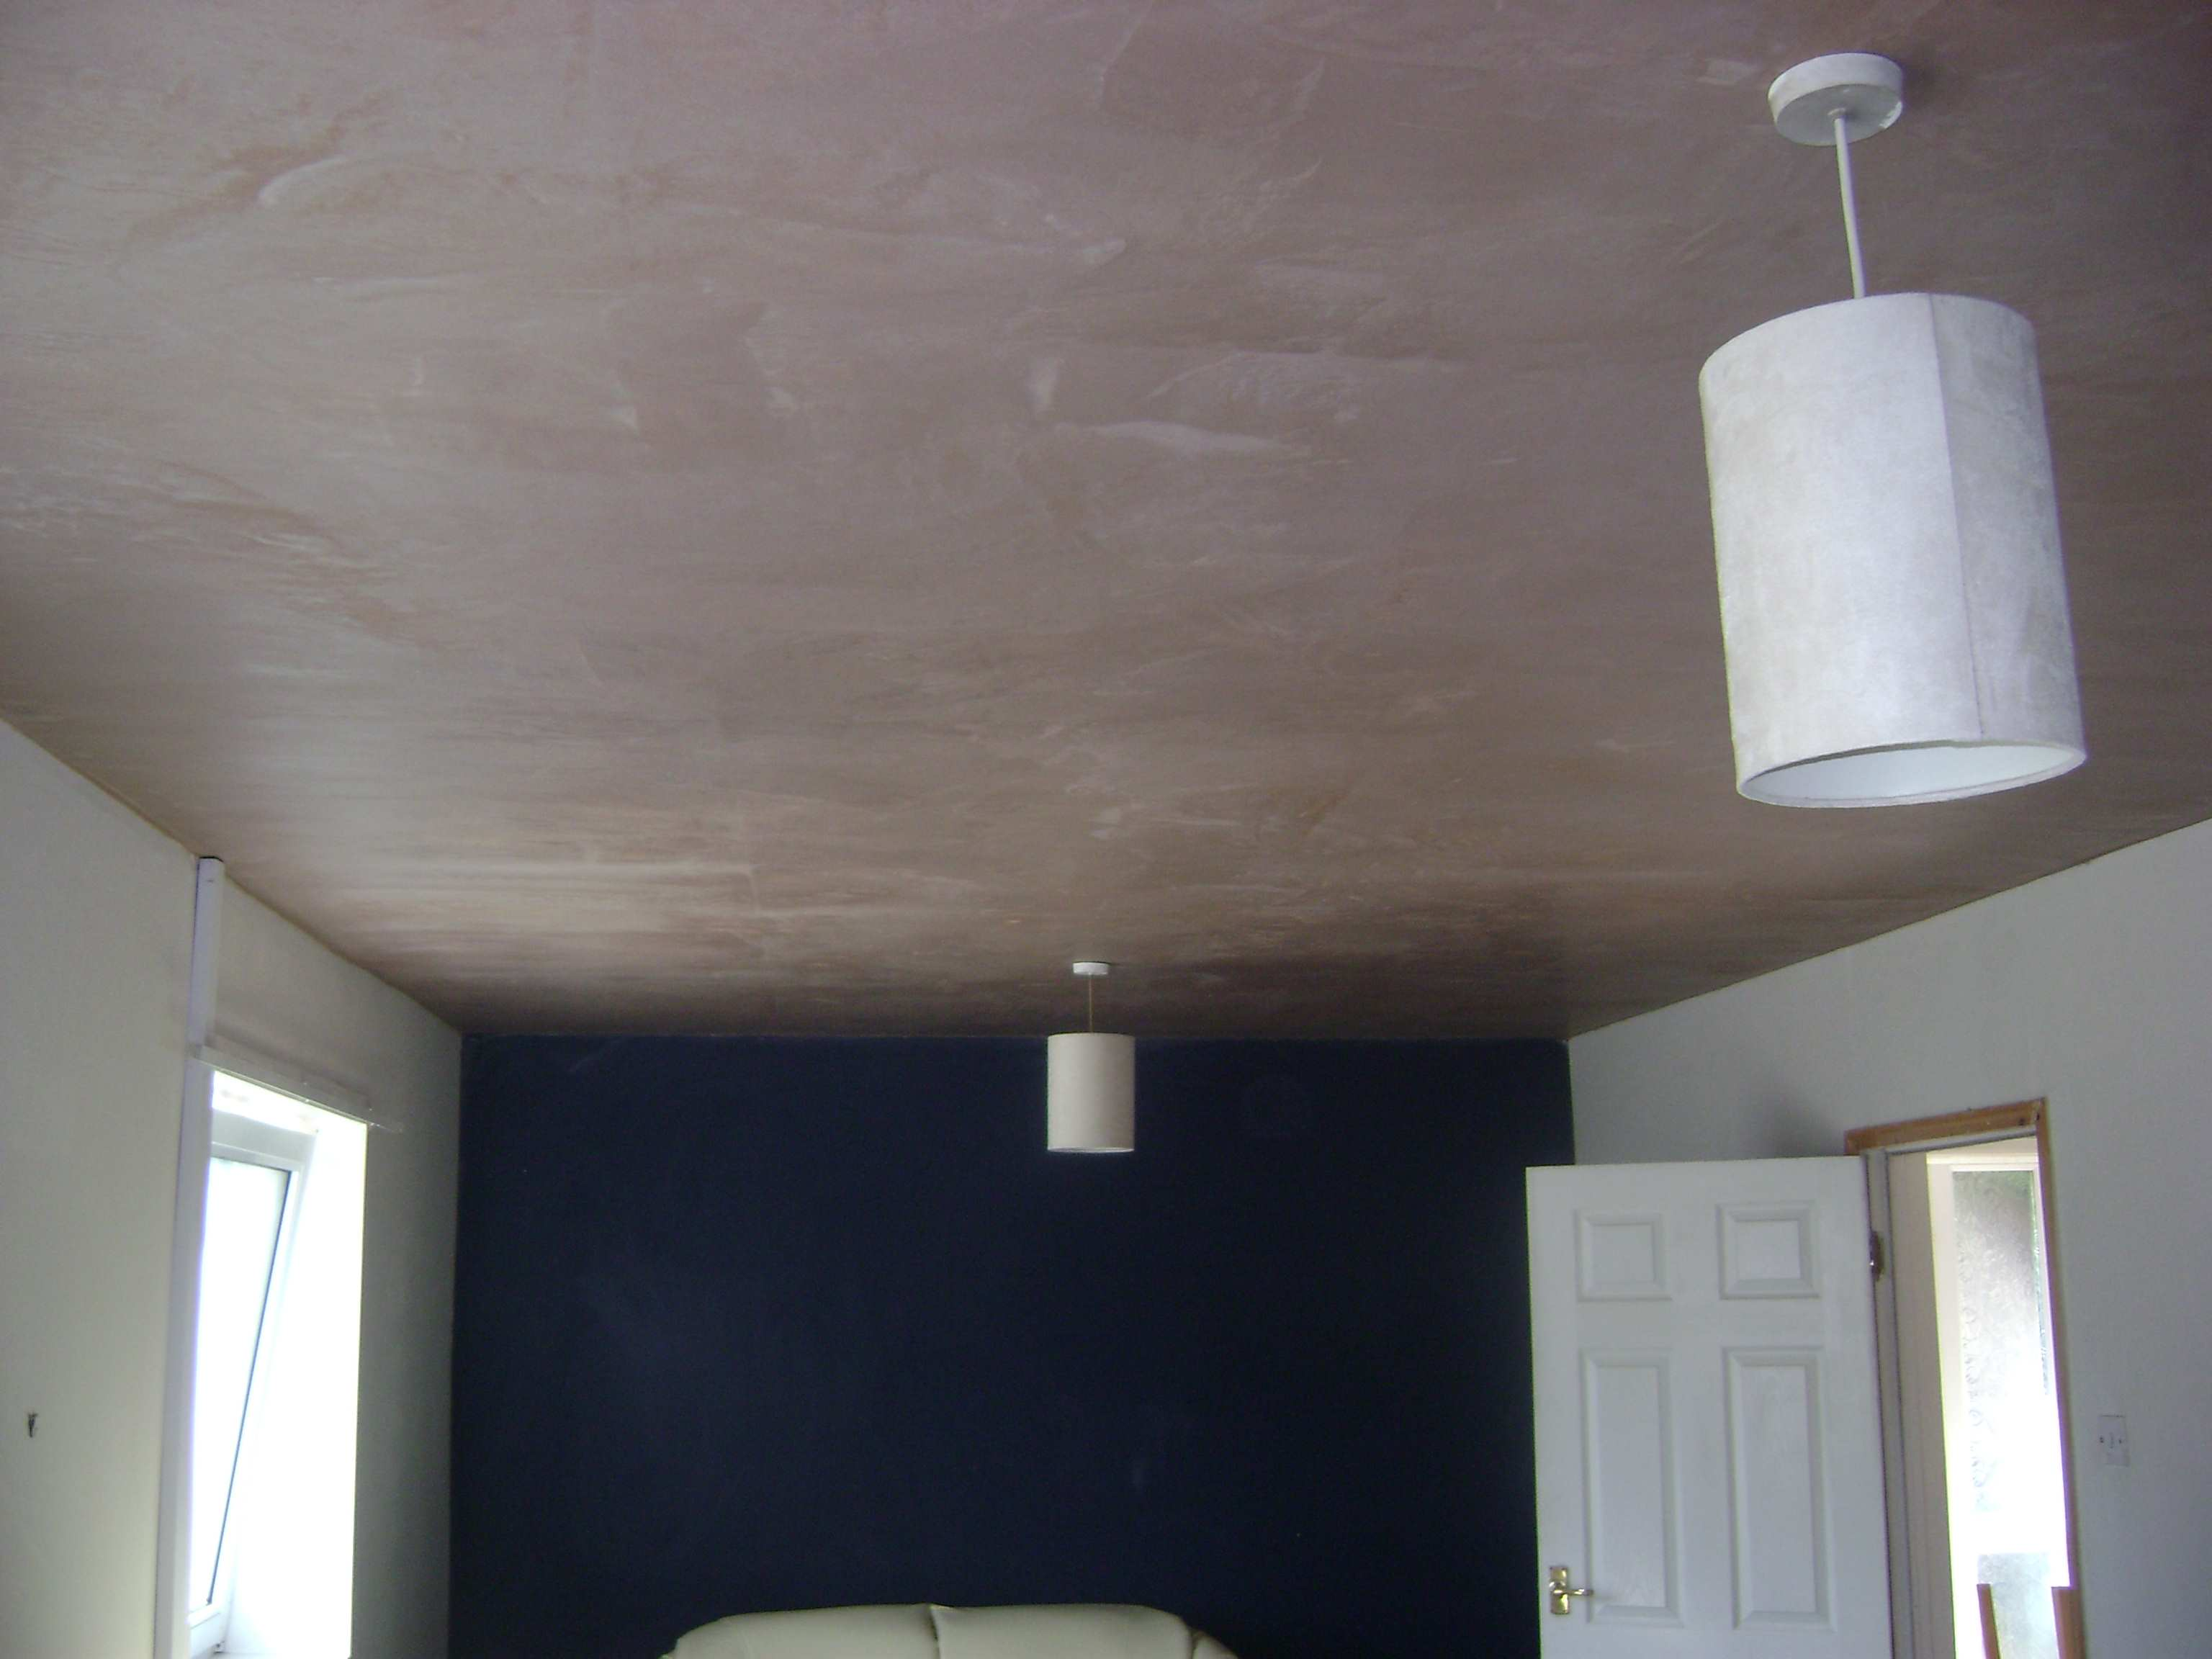 The ceiling once plastering is completed